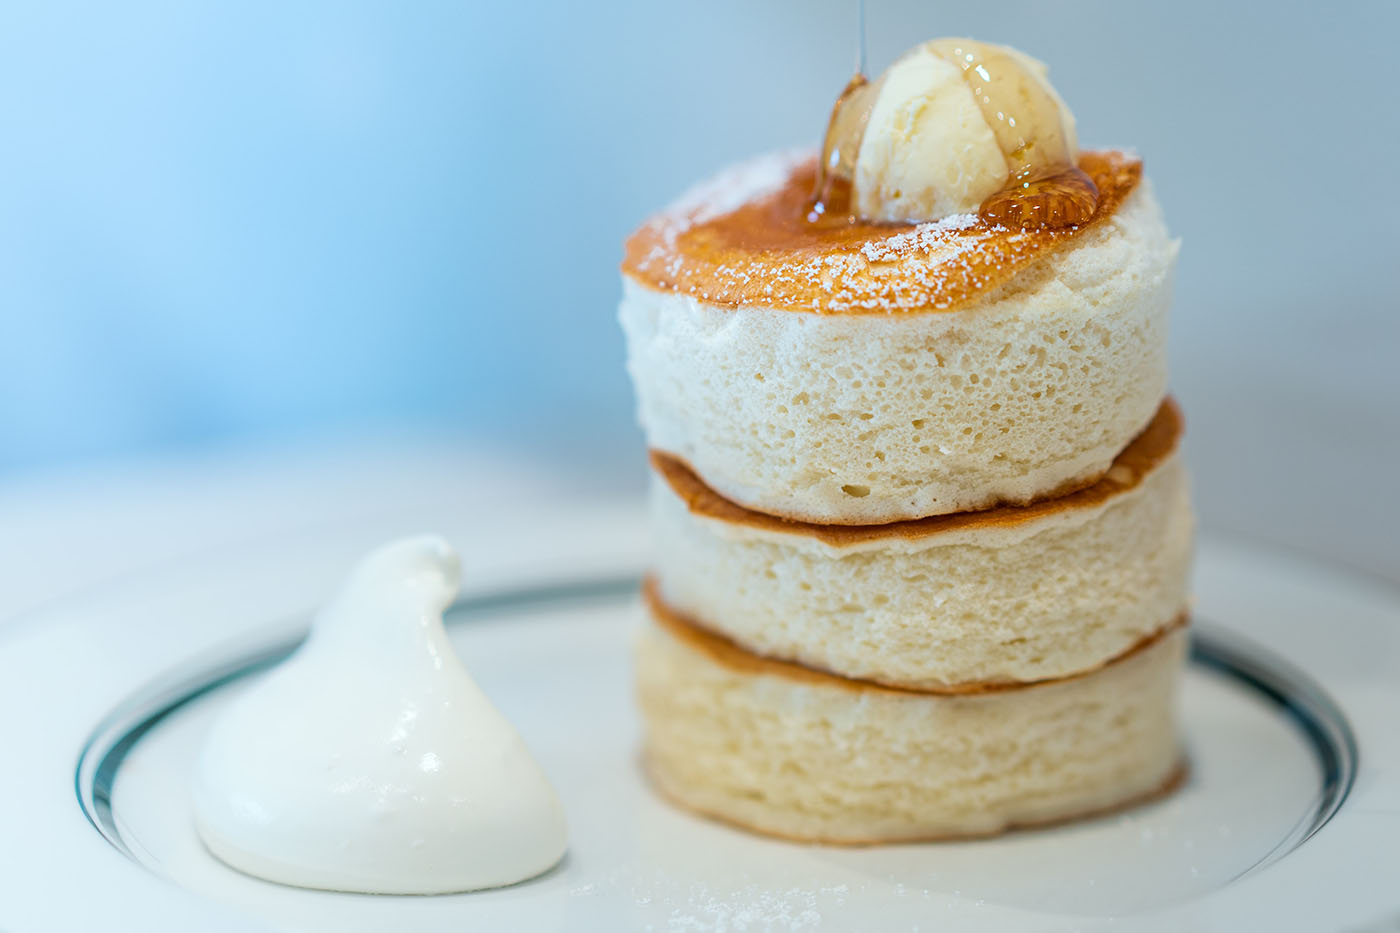 souffle pancake made with Upright instant powdered oatmilk